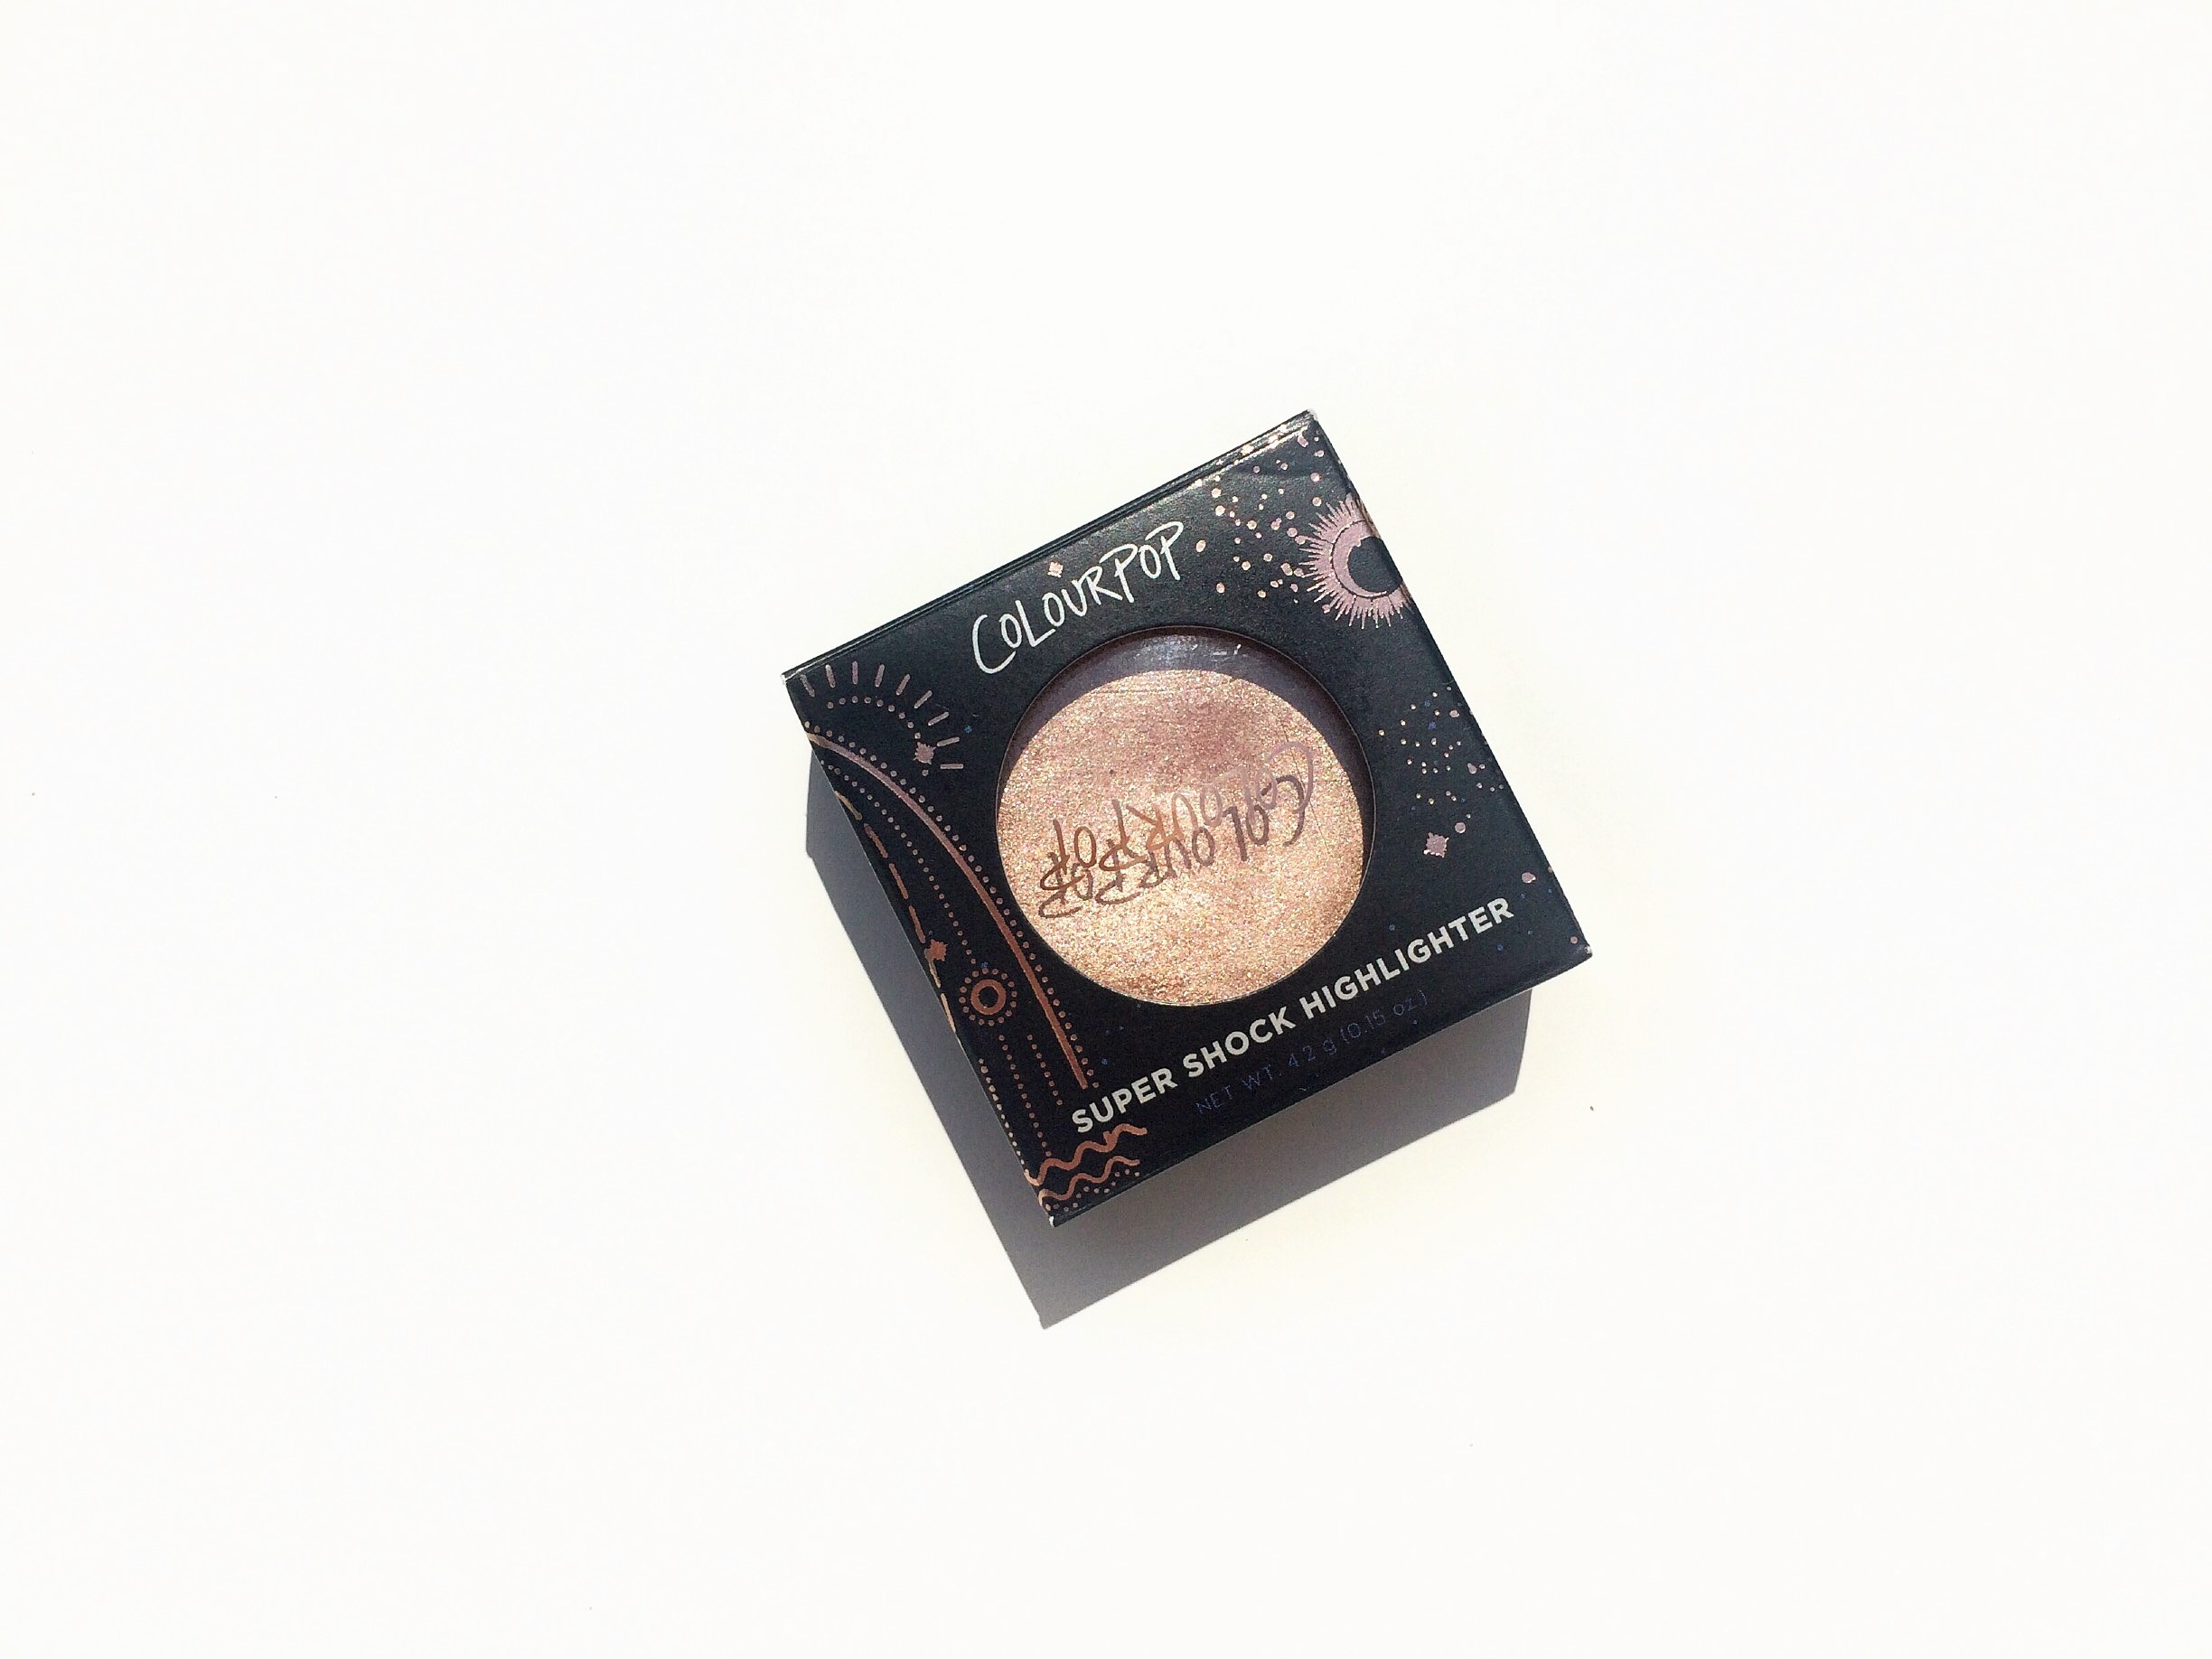 ColourPop On The Cusp Super Shock Highlighter Review